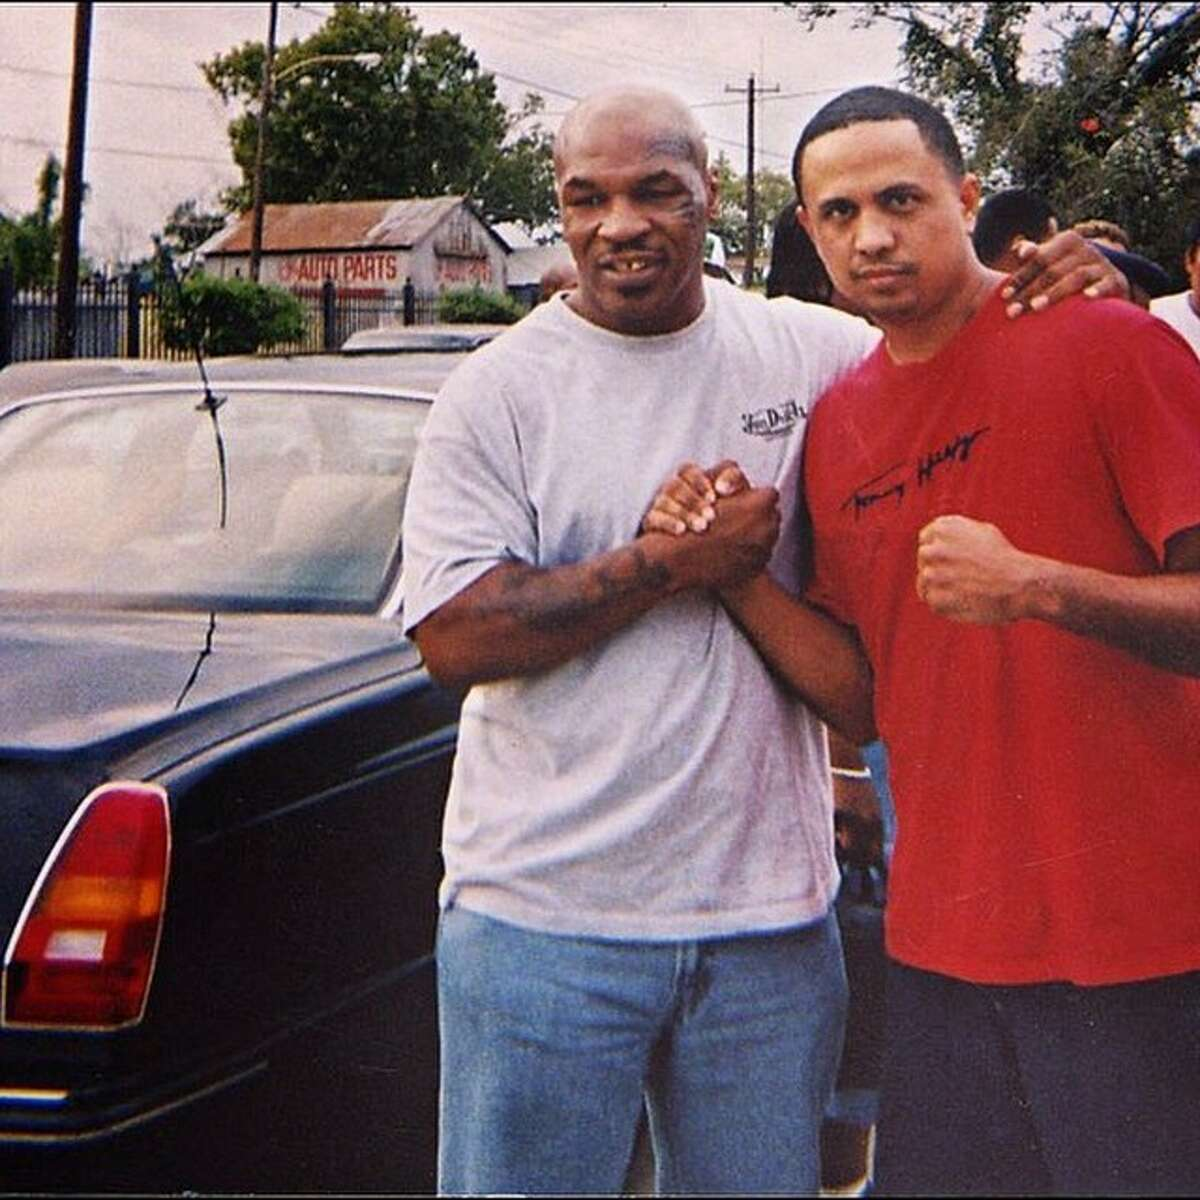 Sosa is shown in an undated photo with former boxing champ Mike Tyson.